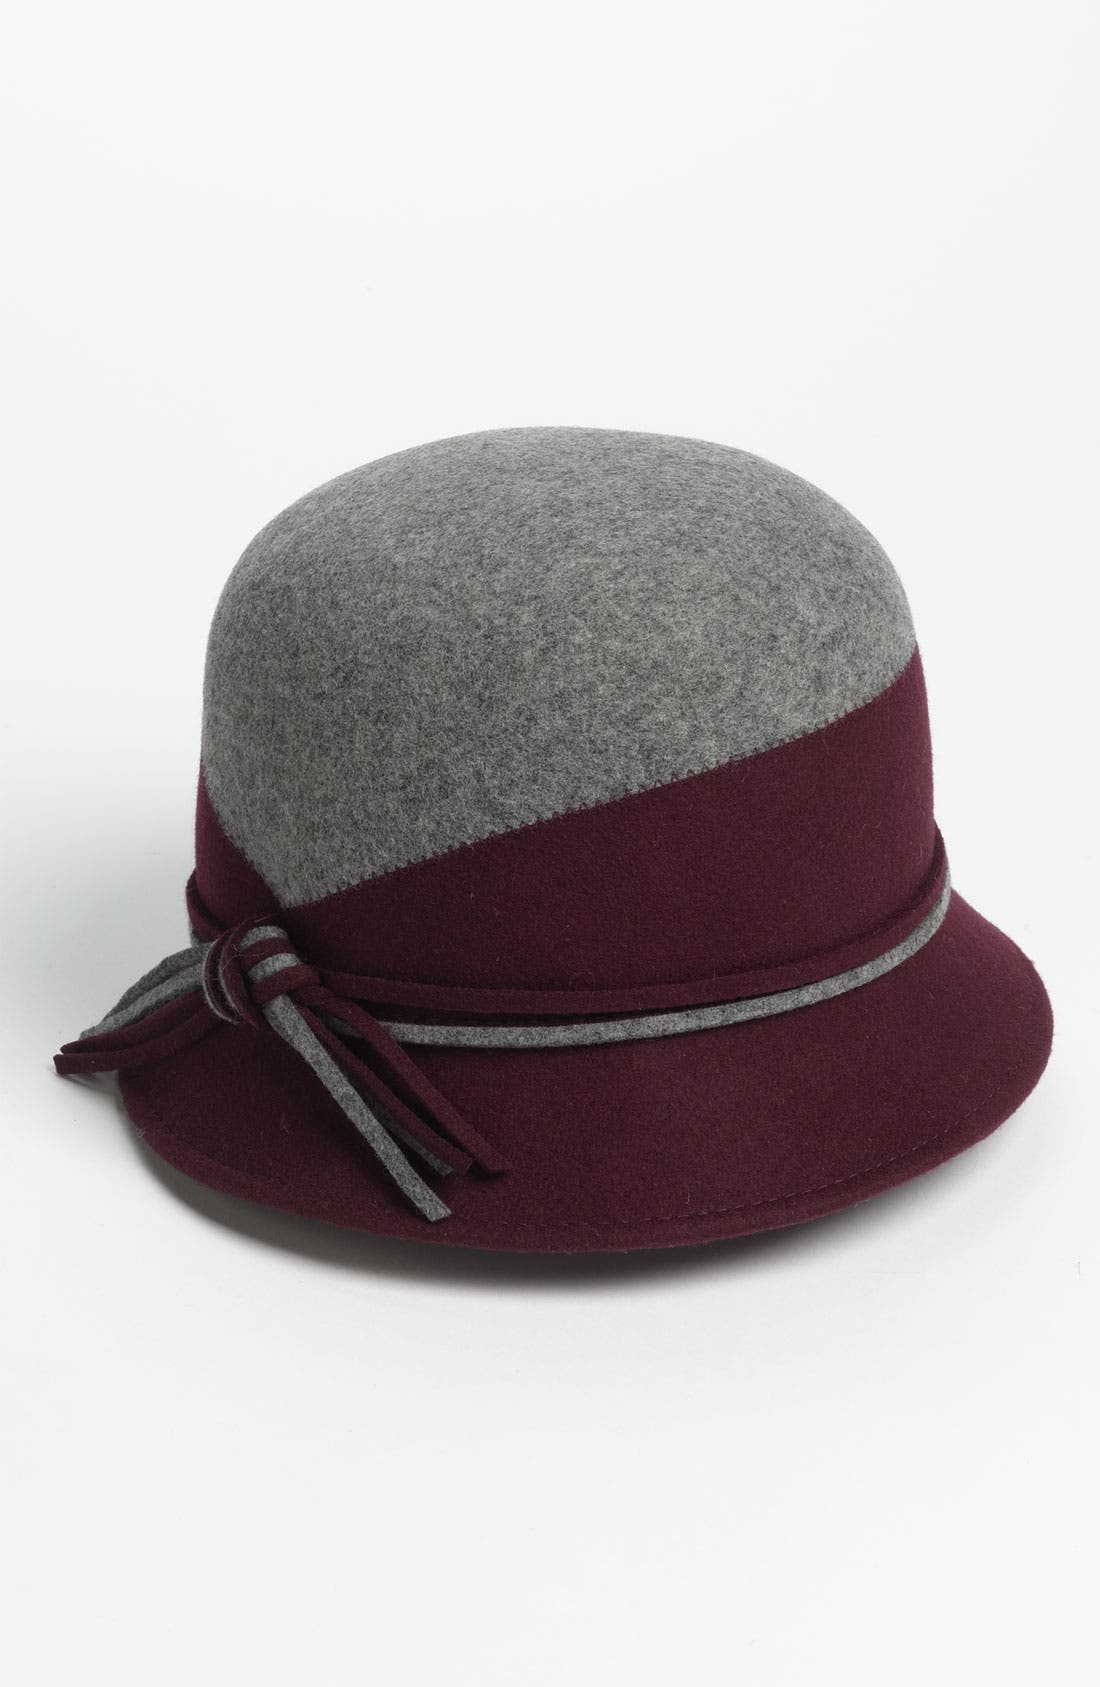 Two Tone Wool Cloche,                             Main thumbnail 1, color,                             Grey/ Wine